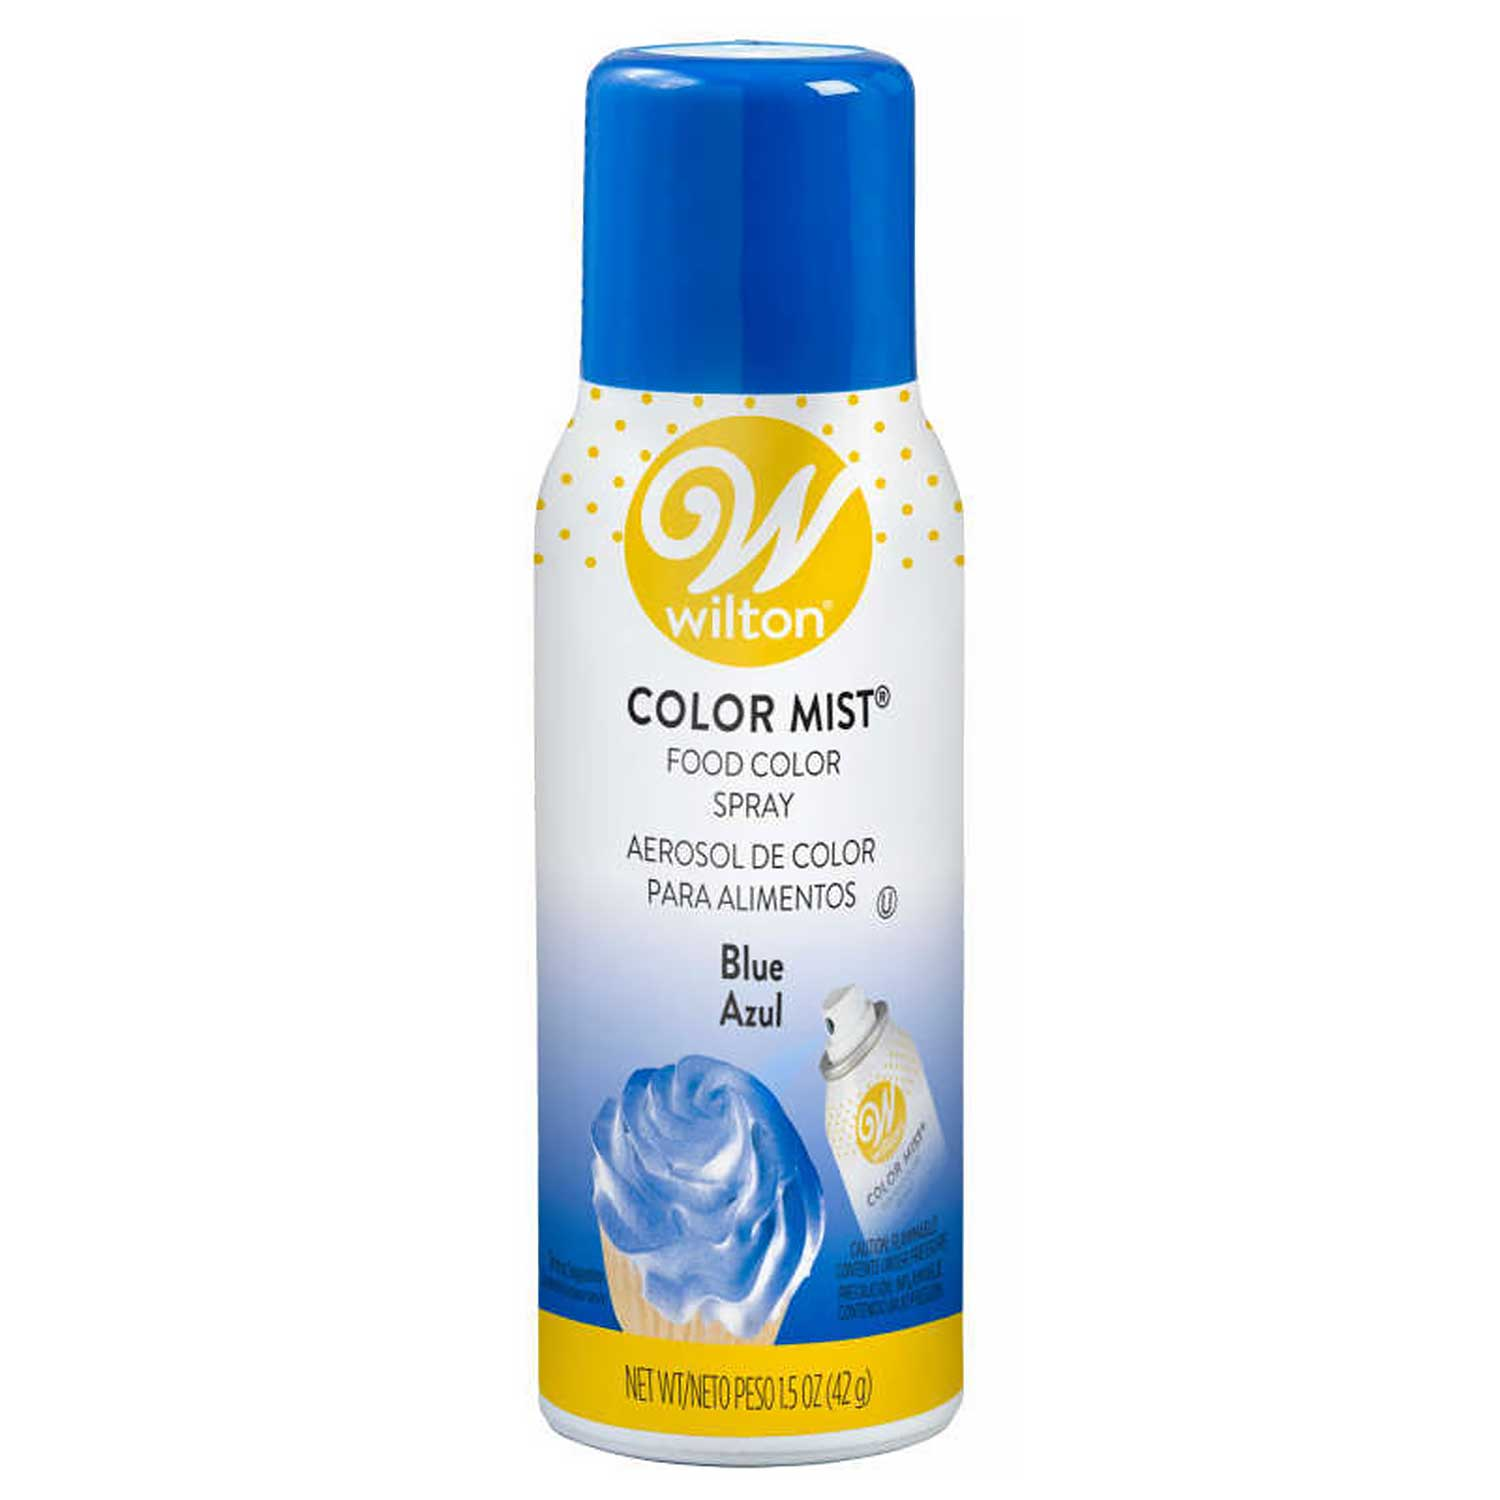 Wilton Color Mist Spray Blue